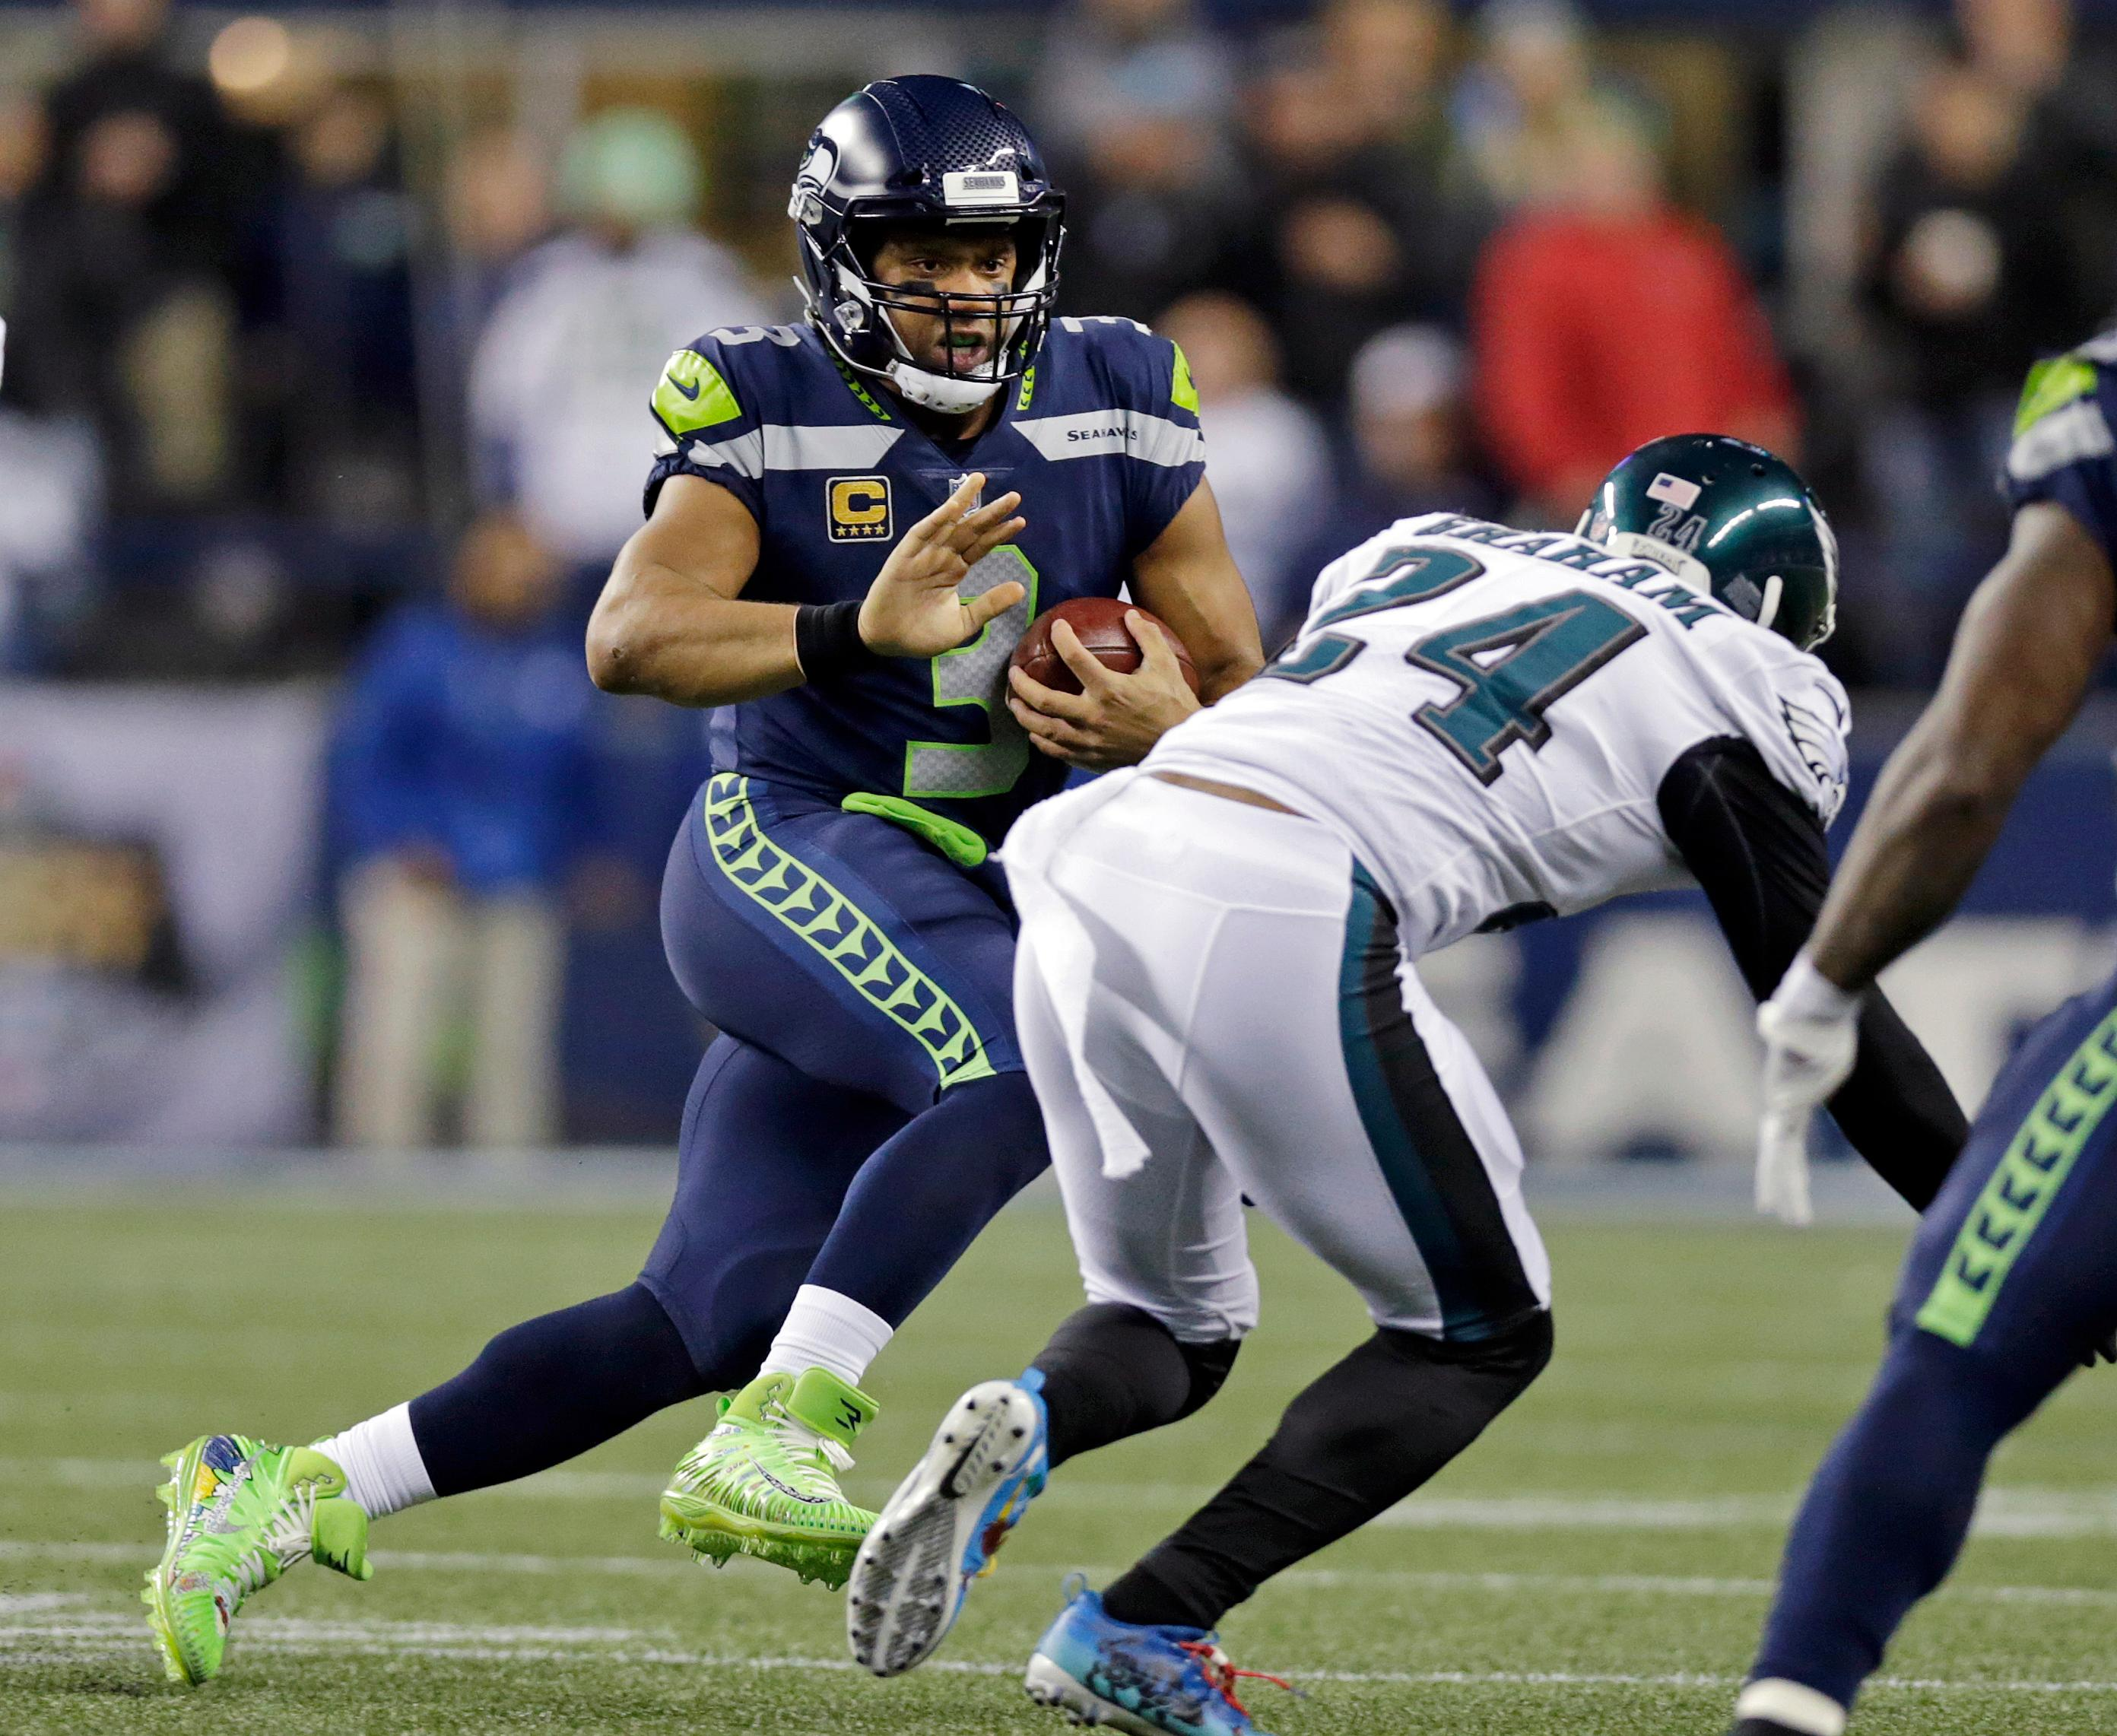 Seattle Seahawks quarterback Russell Wilson, left, scrambles as Philadelphia Eagles' Corey Graham (24) moves in during the first half of an NFL football game, Sunday, Dec. 3, 2017, in Seattle. (AP Photo/John Froschauer)